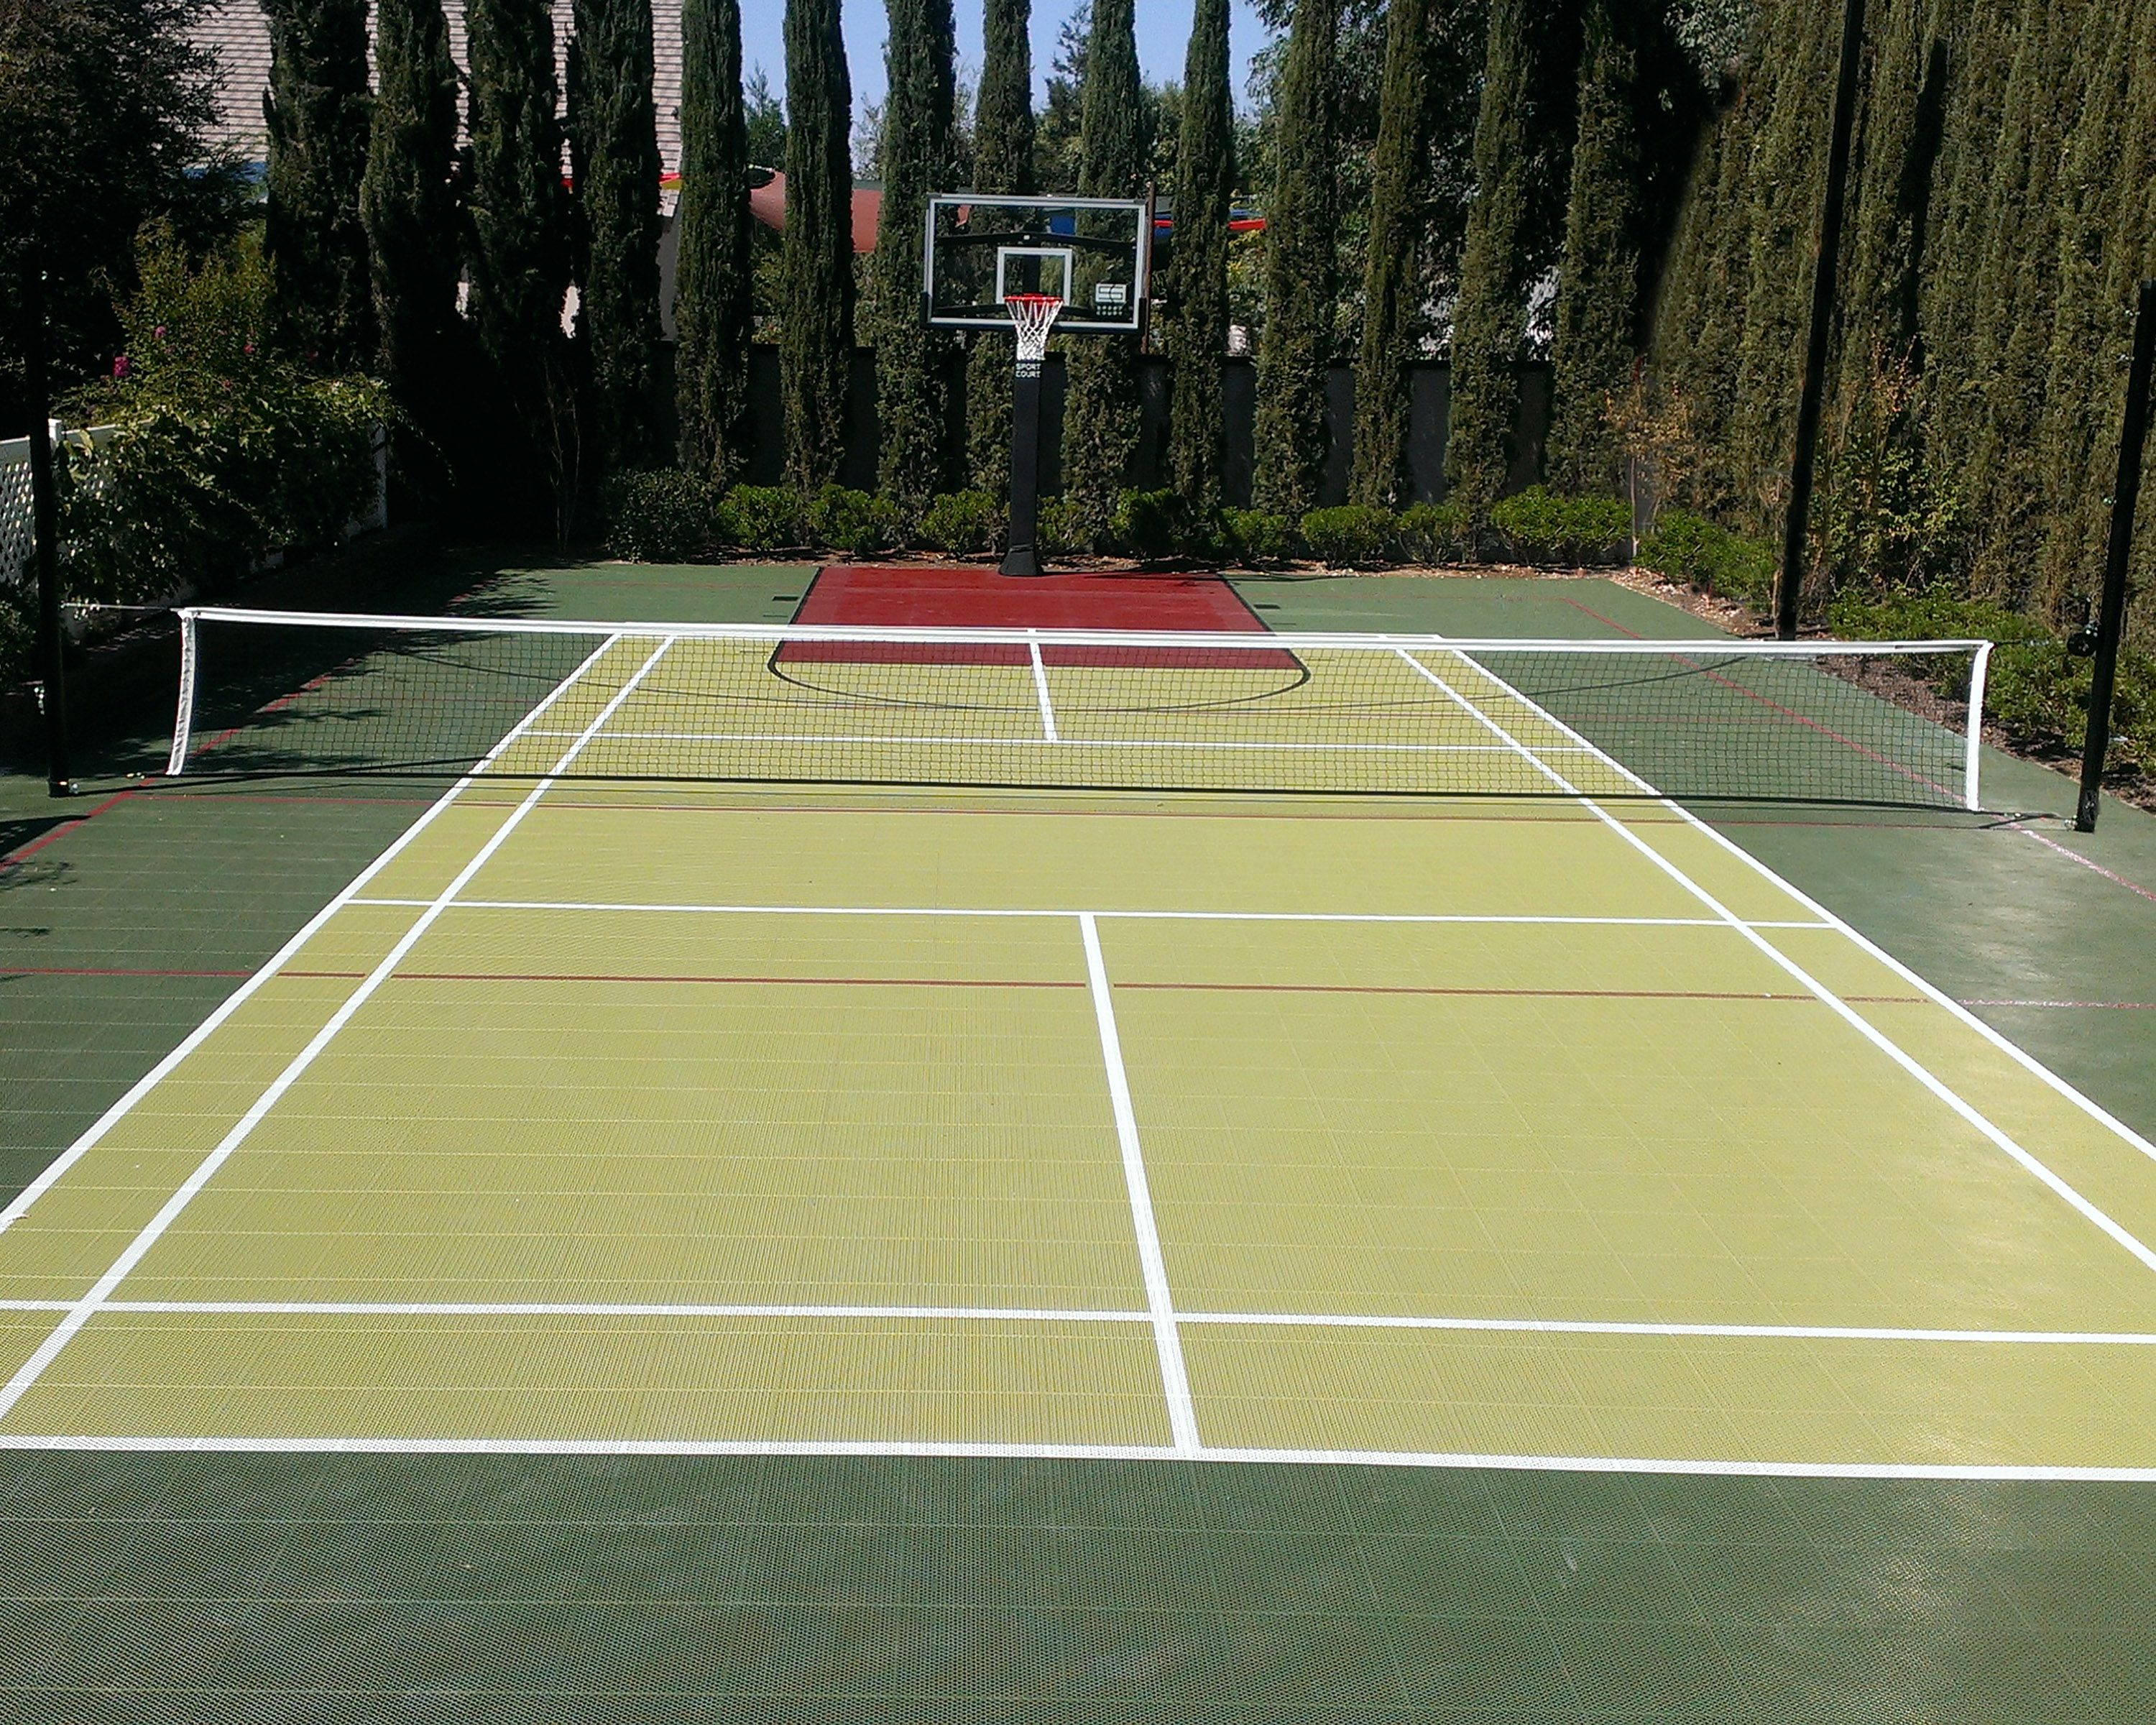 Home Tennis Court And Basketball Court Designed With Court Builder Home Basketball Court Tennis Court Backyard Basketball Court Backyard